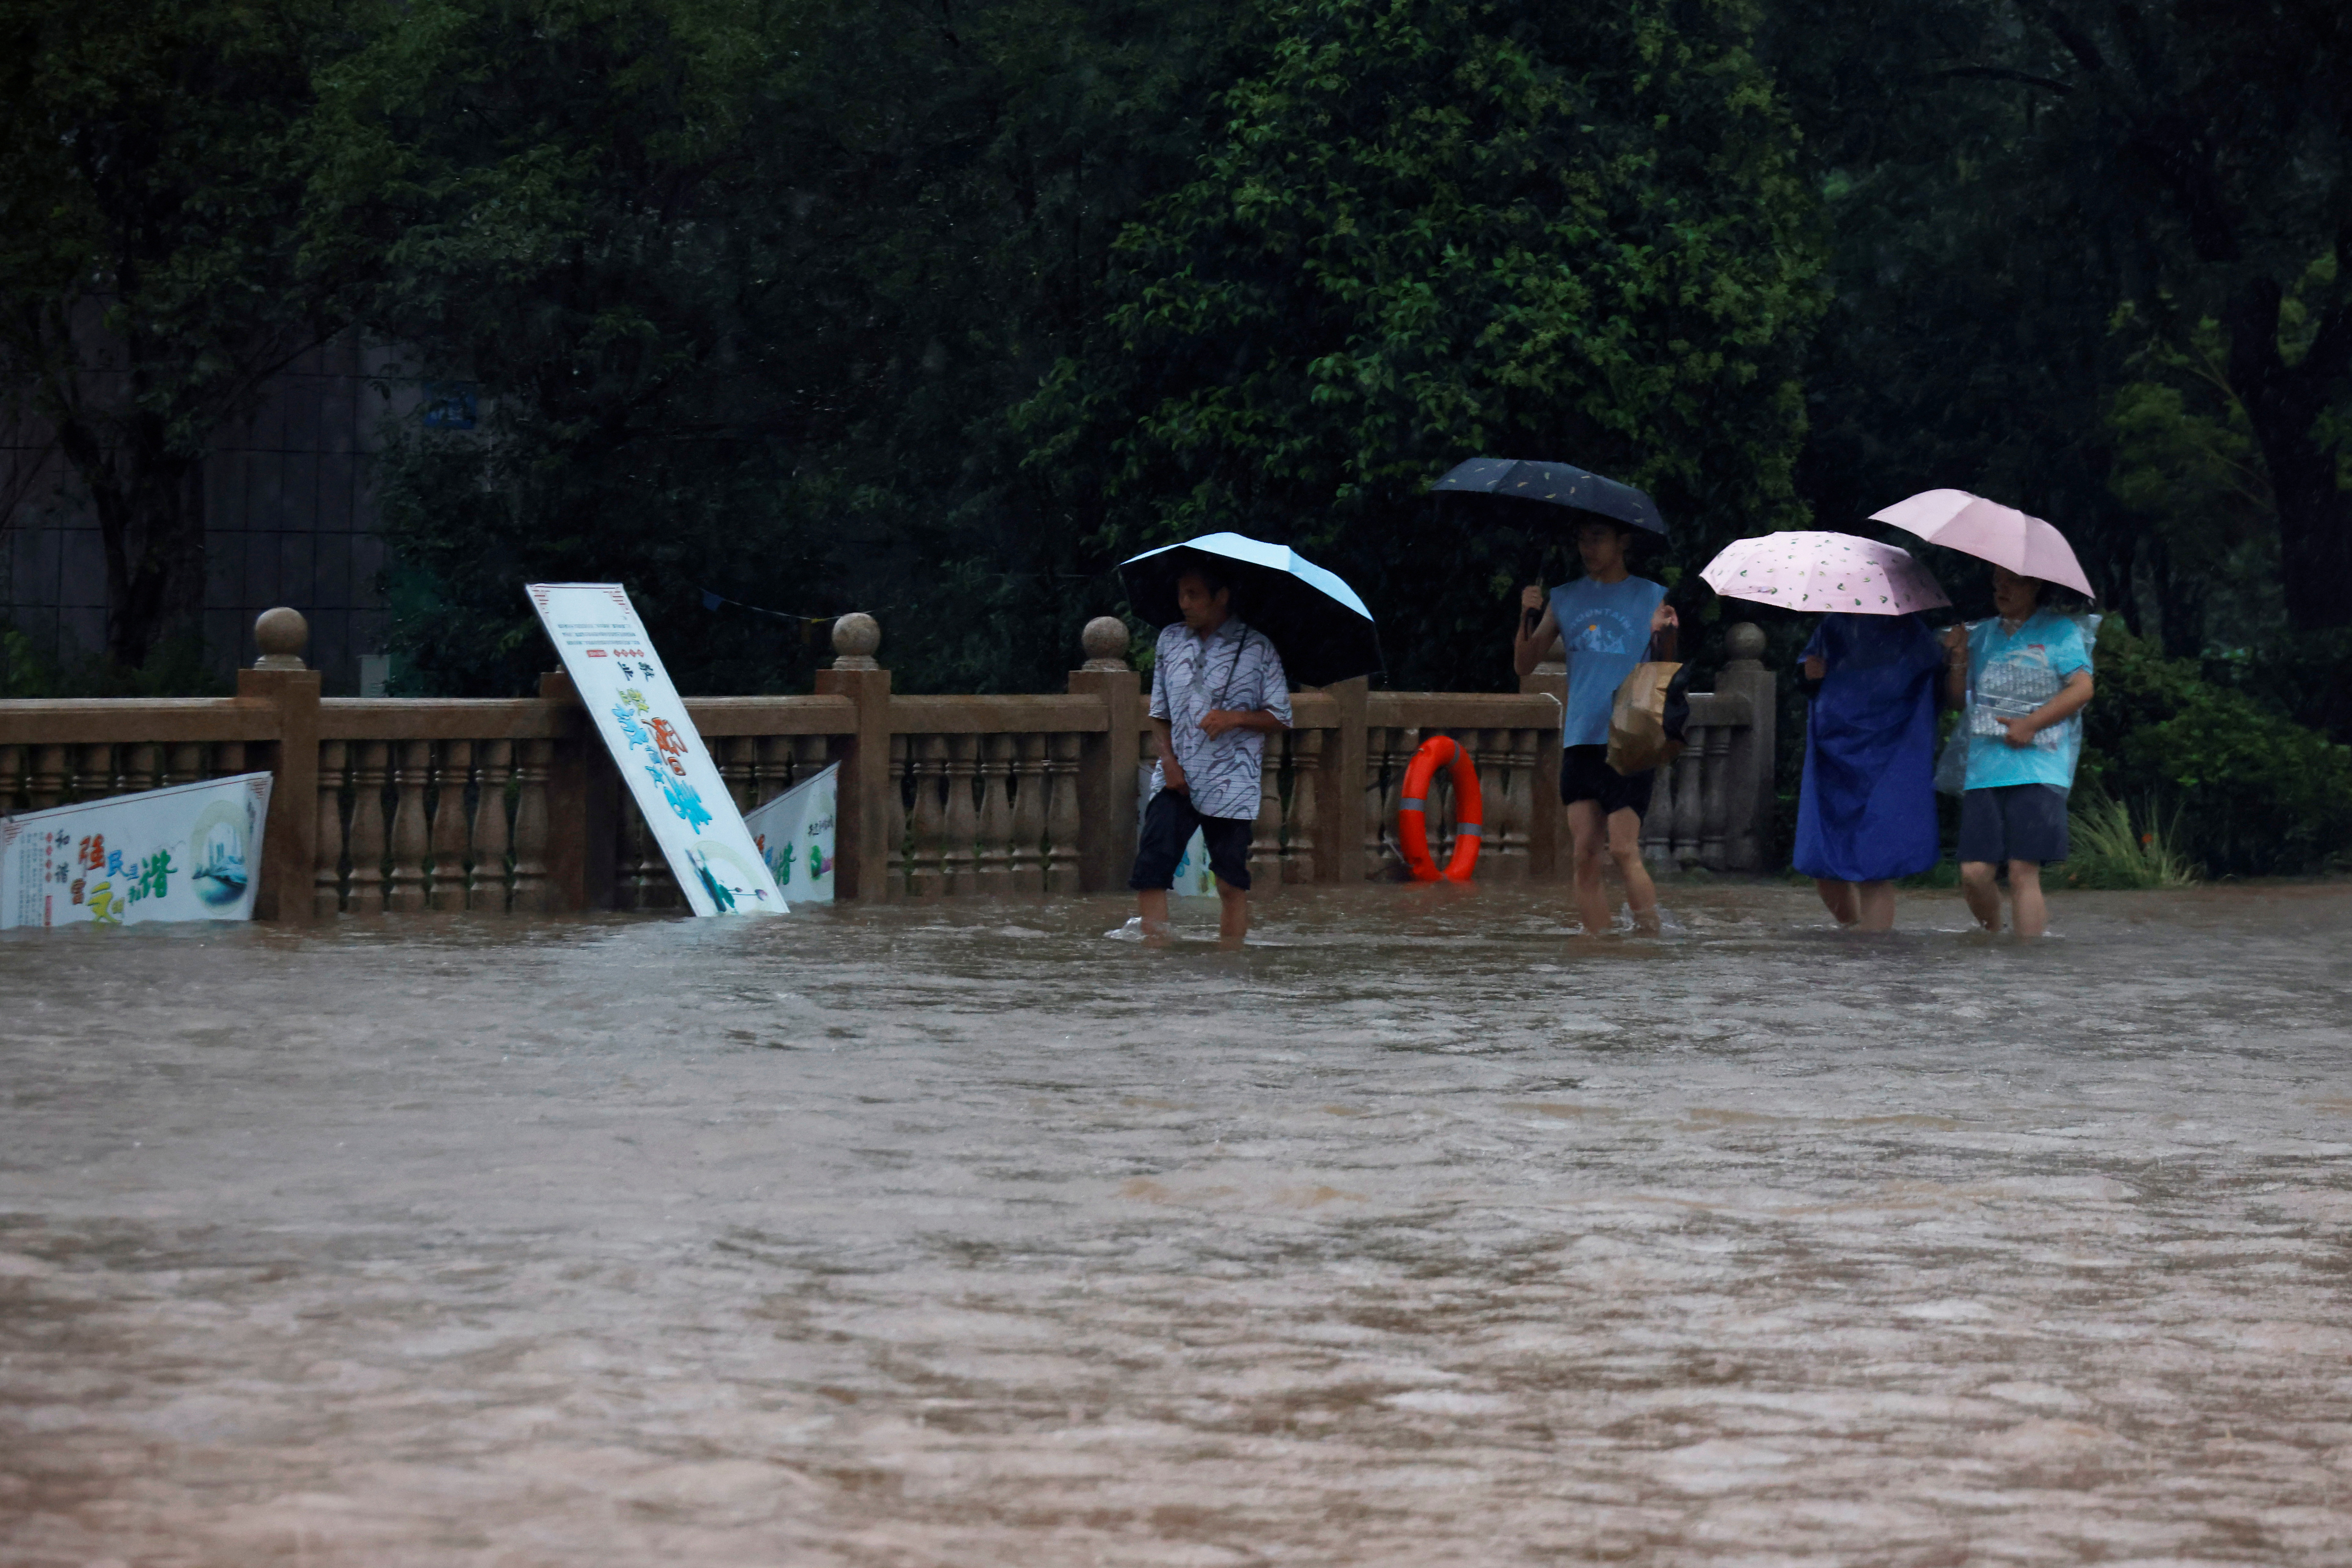 People holding umbrellas amid heavy rainfall wade through floodwaters on a bridge in Hebi, Henan province, China July 22, 2021. REUTERS/Aly Song